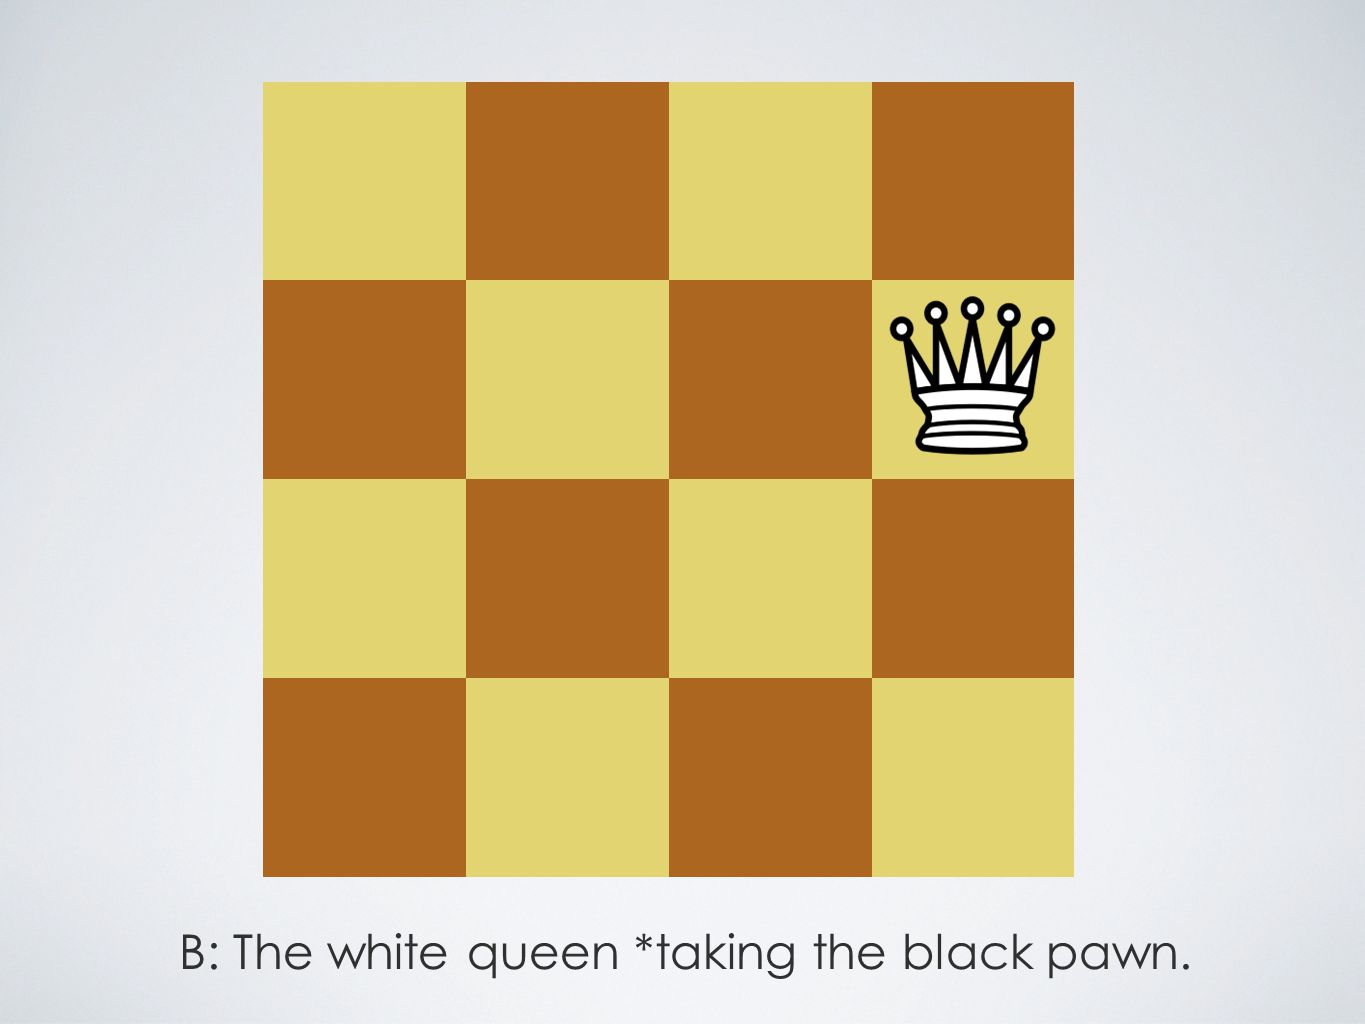 B: The white queen *taking the black pawn.